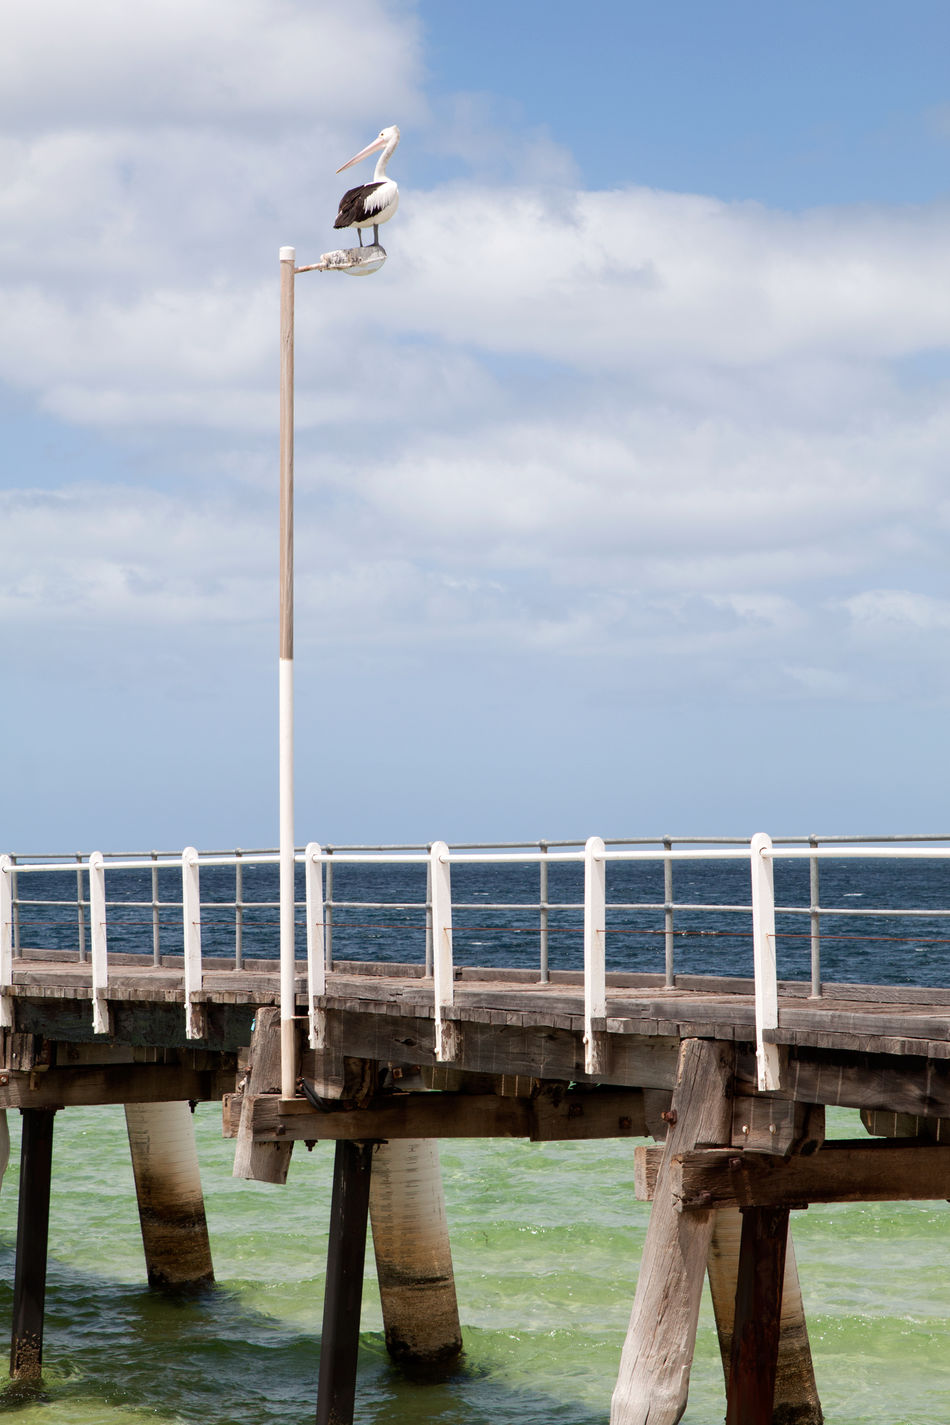 Pelican perched above a pier Australian Bird Australian Pelicans Australian Wildlife Beach Photography Clear Water Cloud - Sky Day Landscape Man And Nature Man Made Structure Nature No People Outdoors Pelican Pelican Perching Perfect Day Pier Railing Sea Sky Water Water Bird Wharf